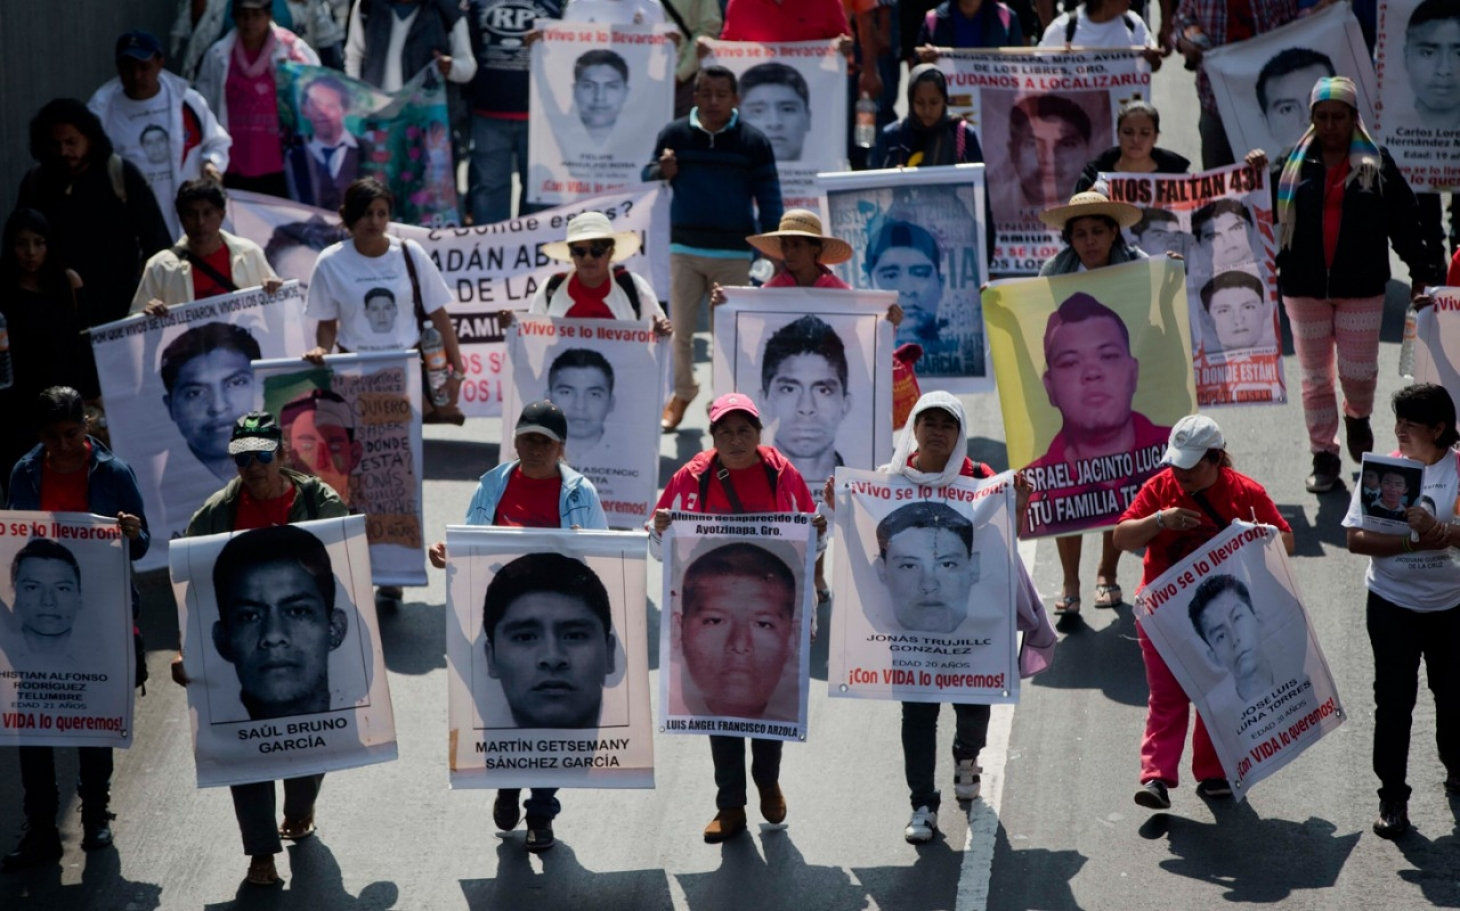 What is mexico's main problem?